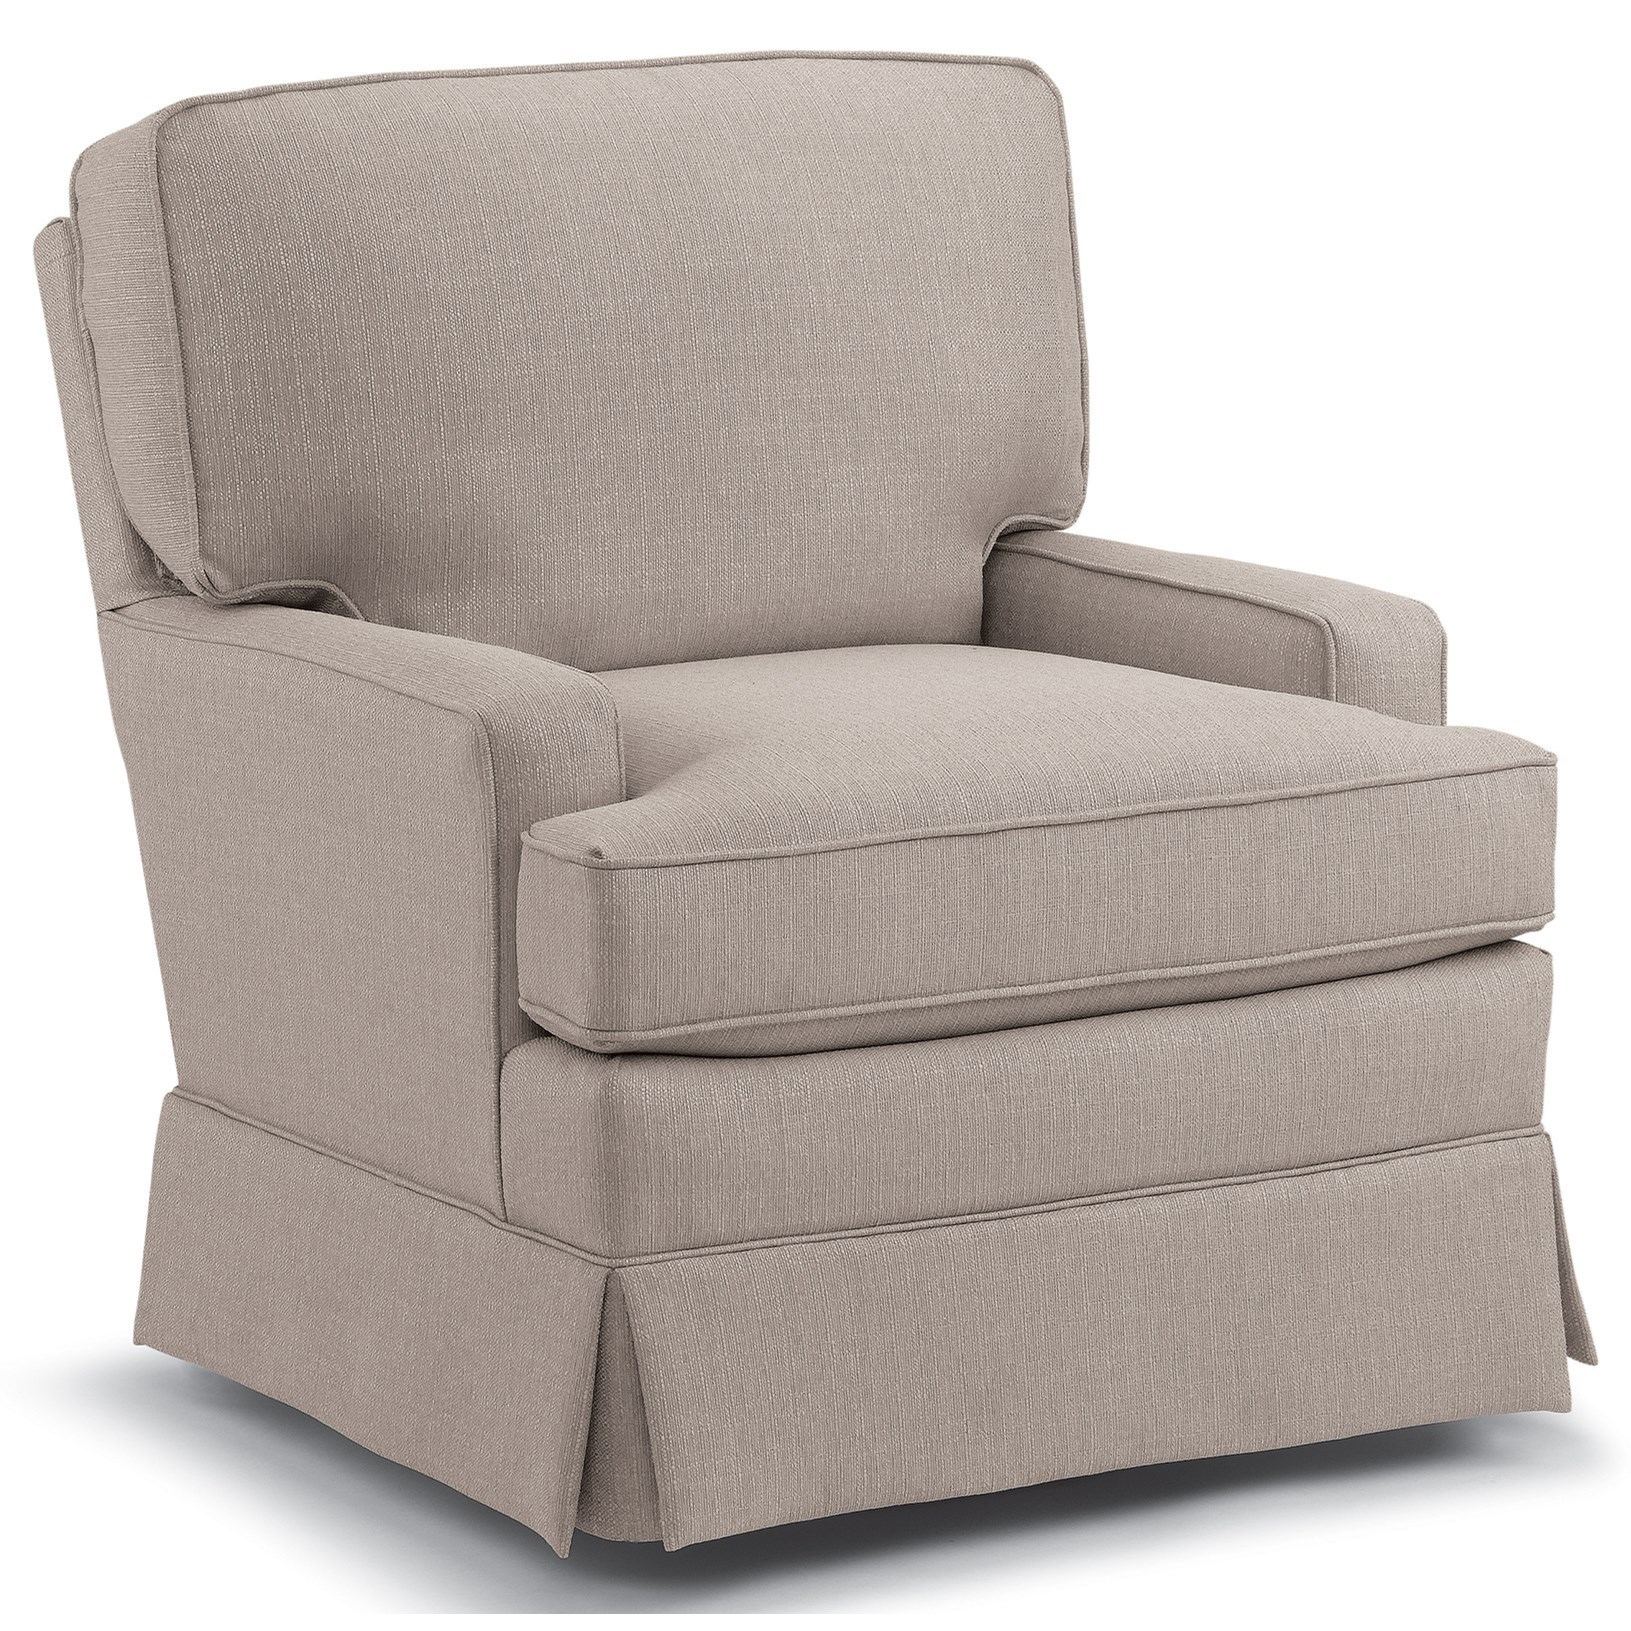 Swivels Rena Swivel Glider by Best Home Furnishings at Walker's Furniture